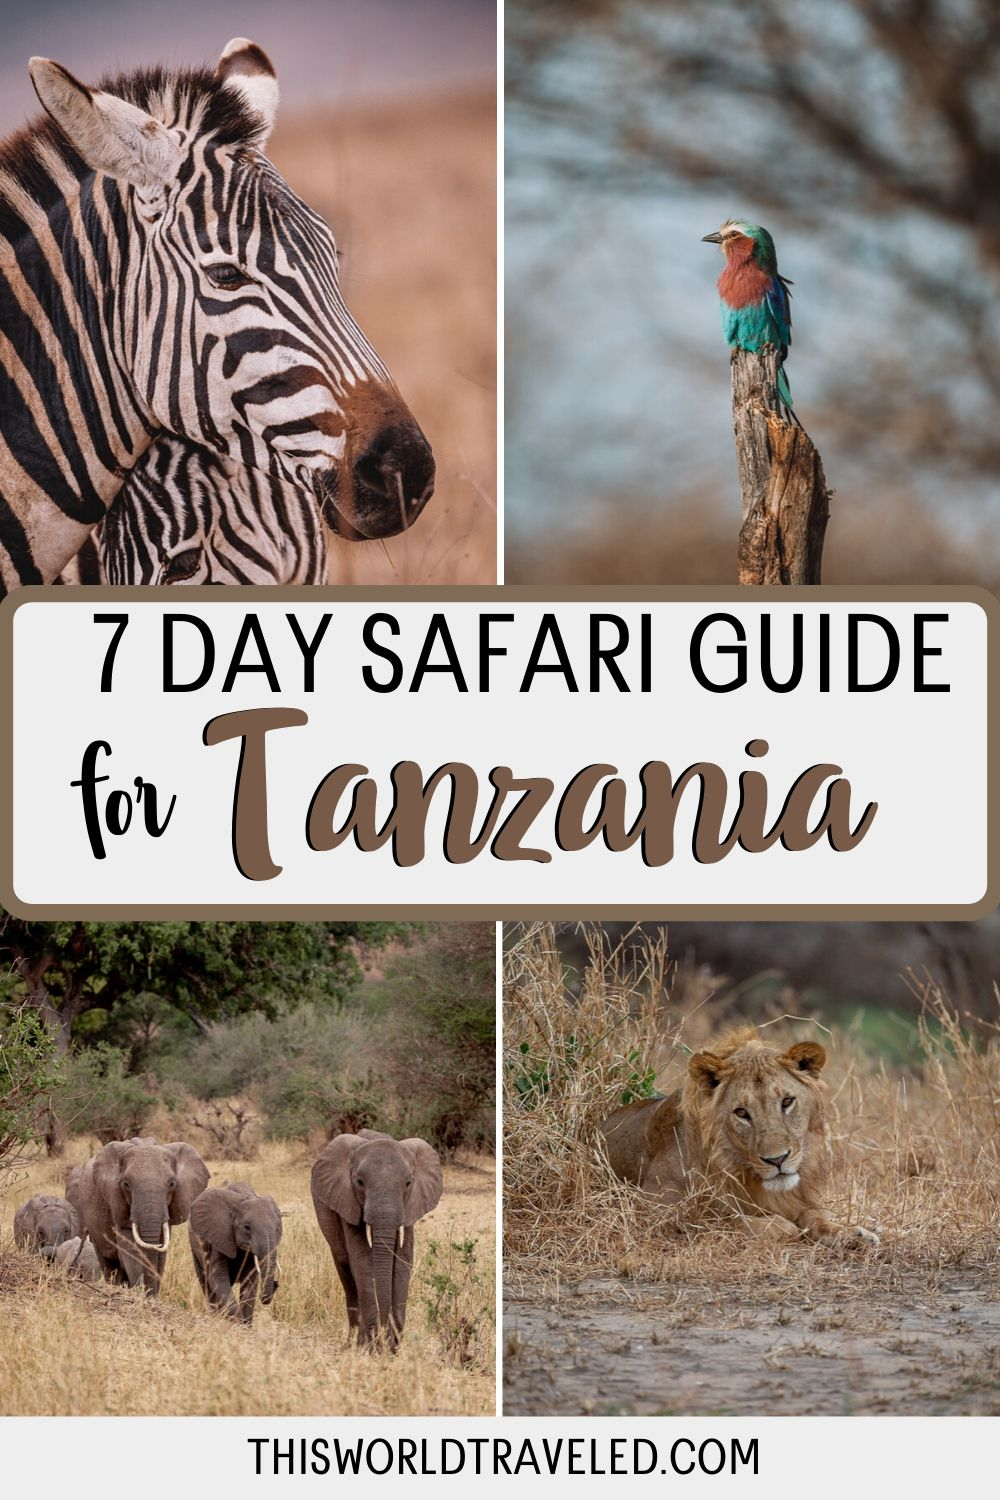 TA 7 Day Safari Guide to Tanzania with photos of a zebra, elephants and a lion from Africa